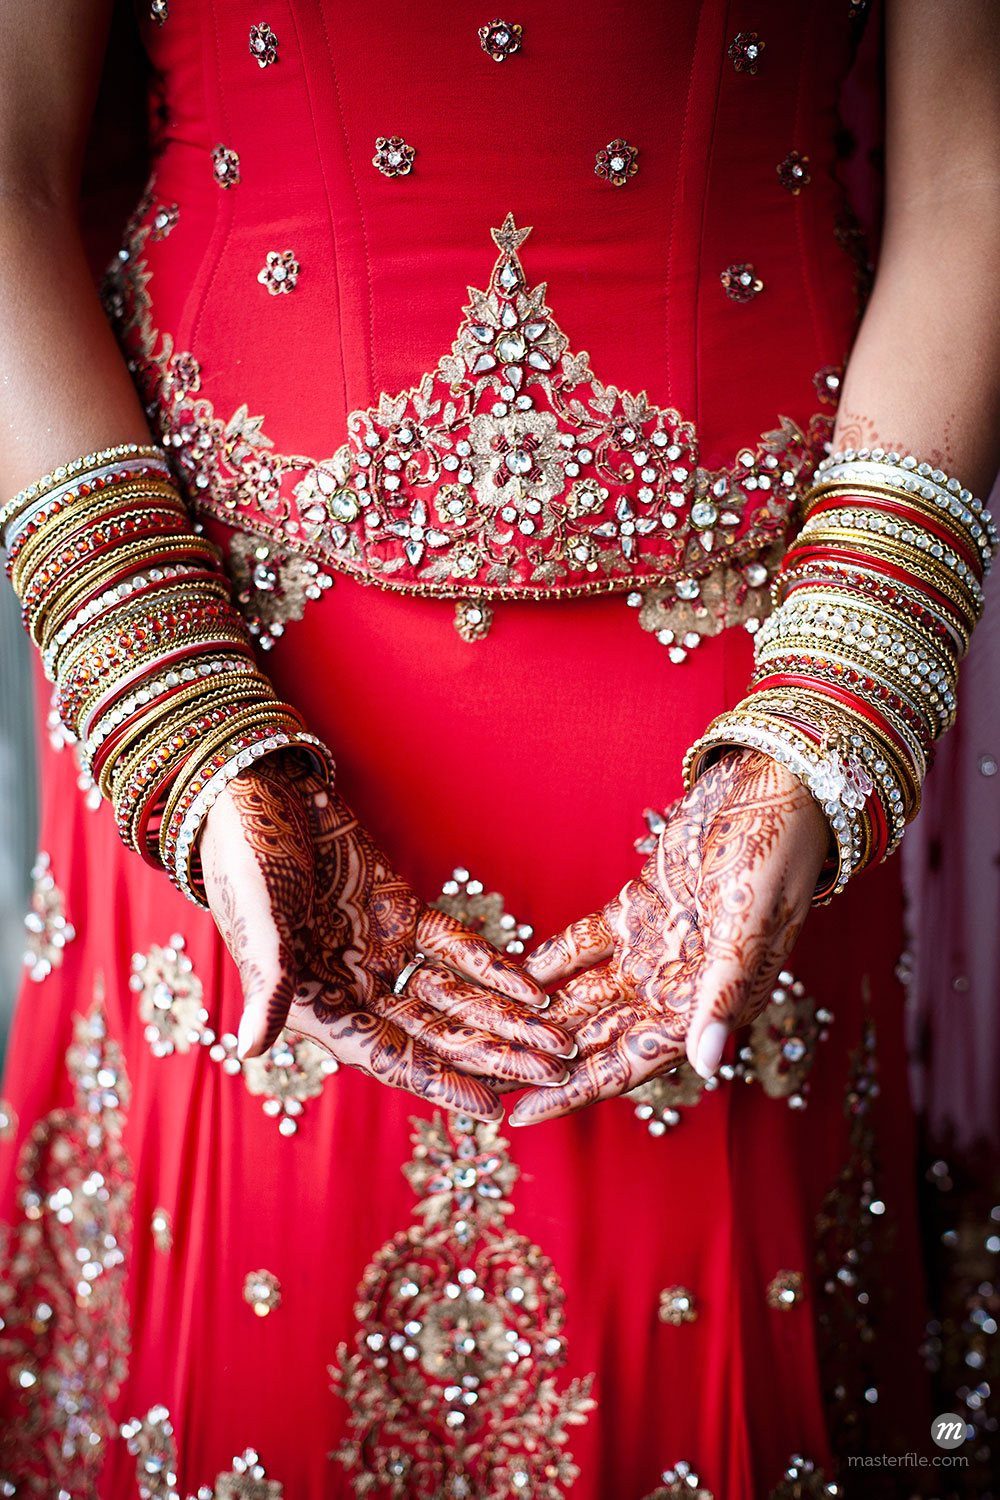 Hindu bride with henna design on hands at wedding ceremony © Ikonica / Masterfile